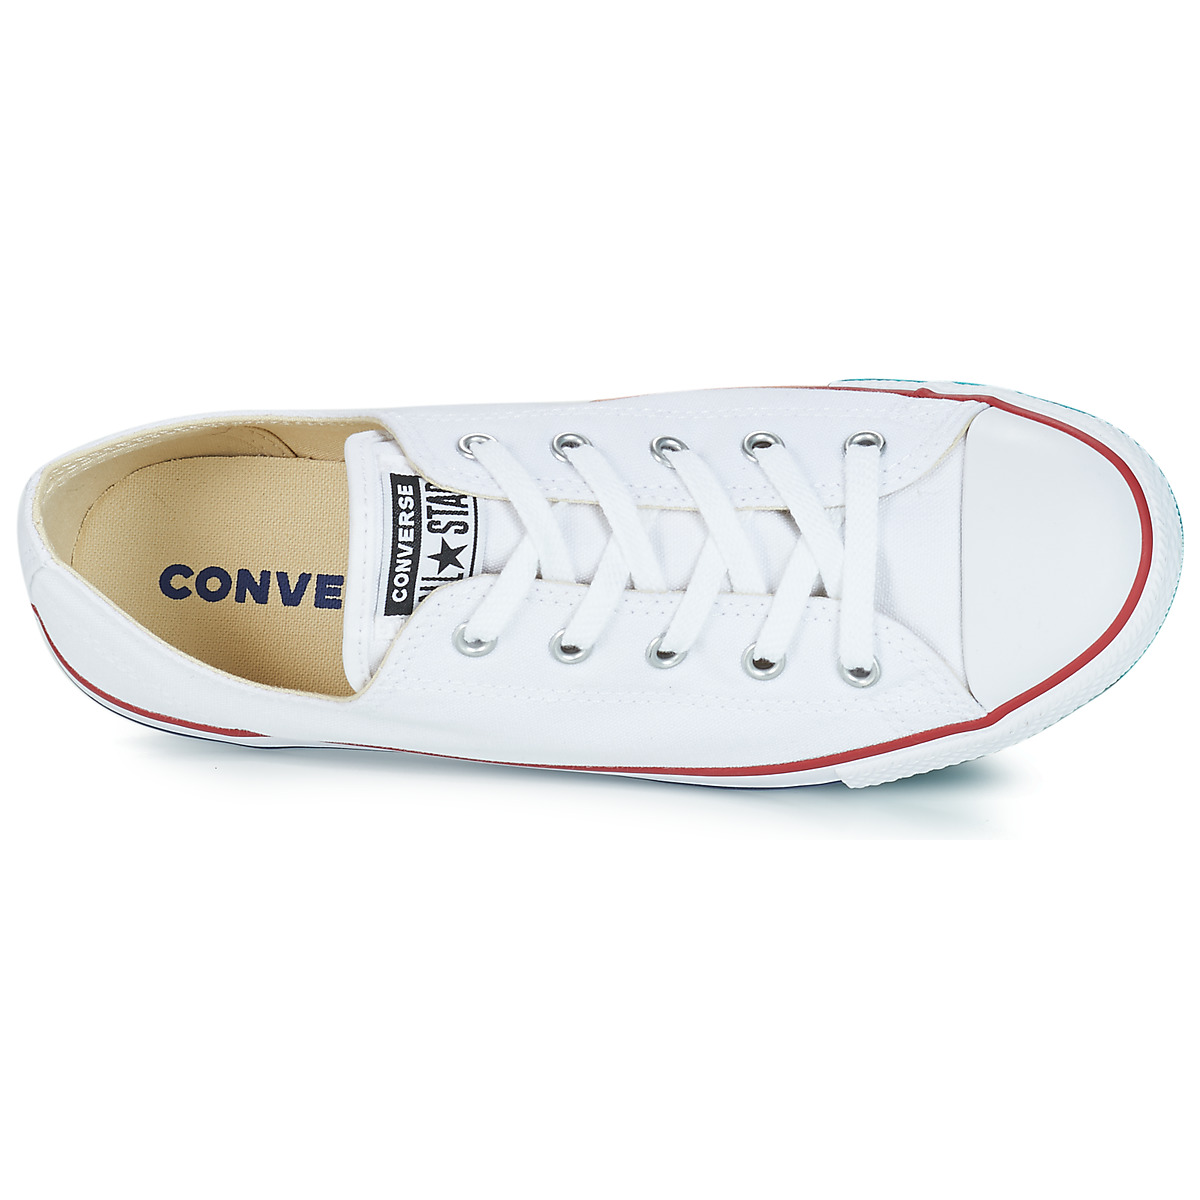 9ad058c93ddff1 free shipping Converse ALL STAR DAINTY CANVAS OX White Shoes Low top  trainers Women